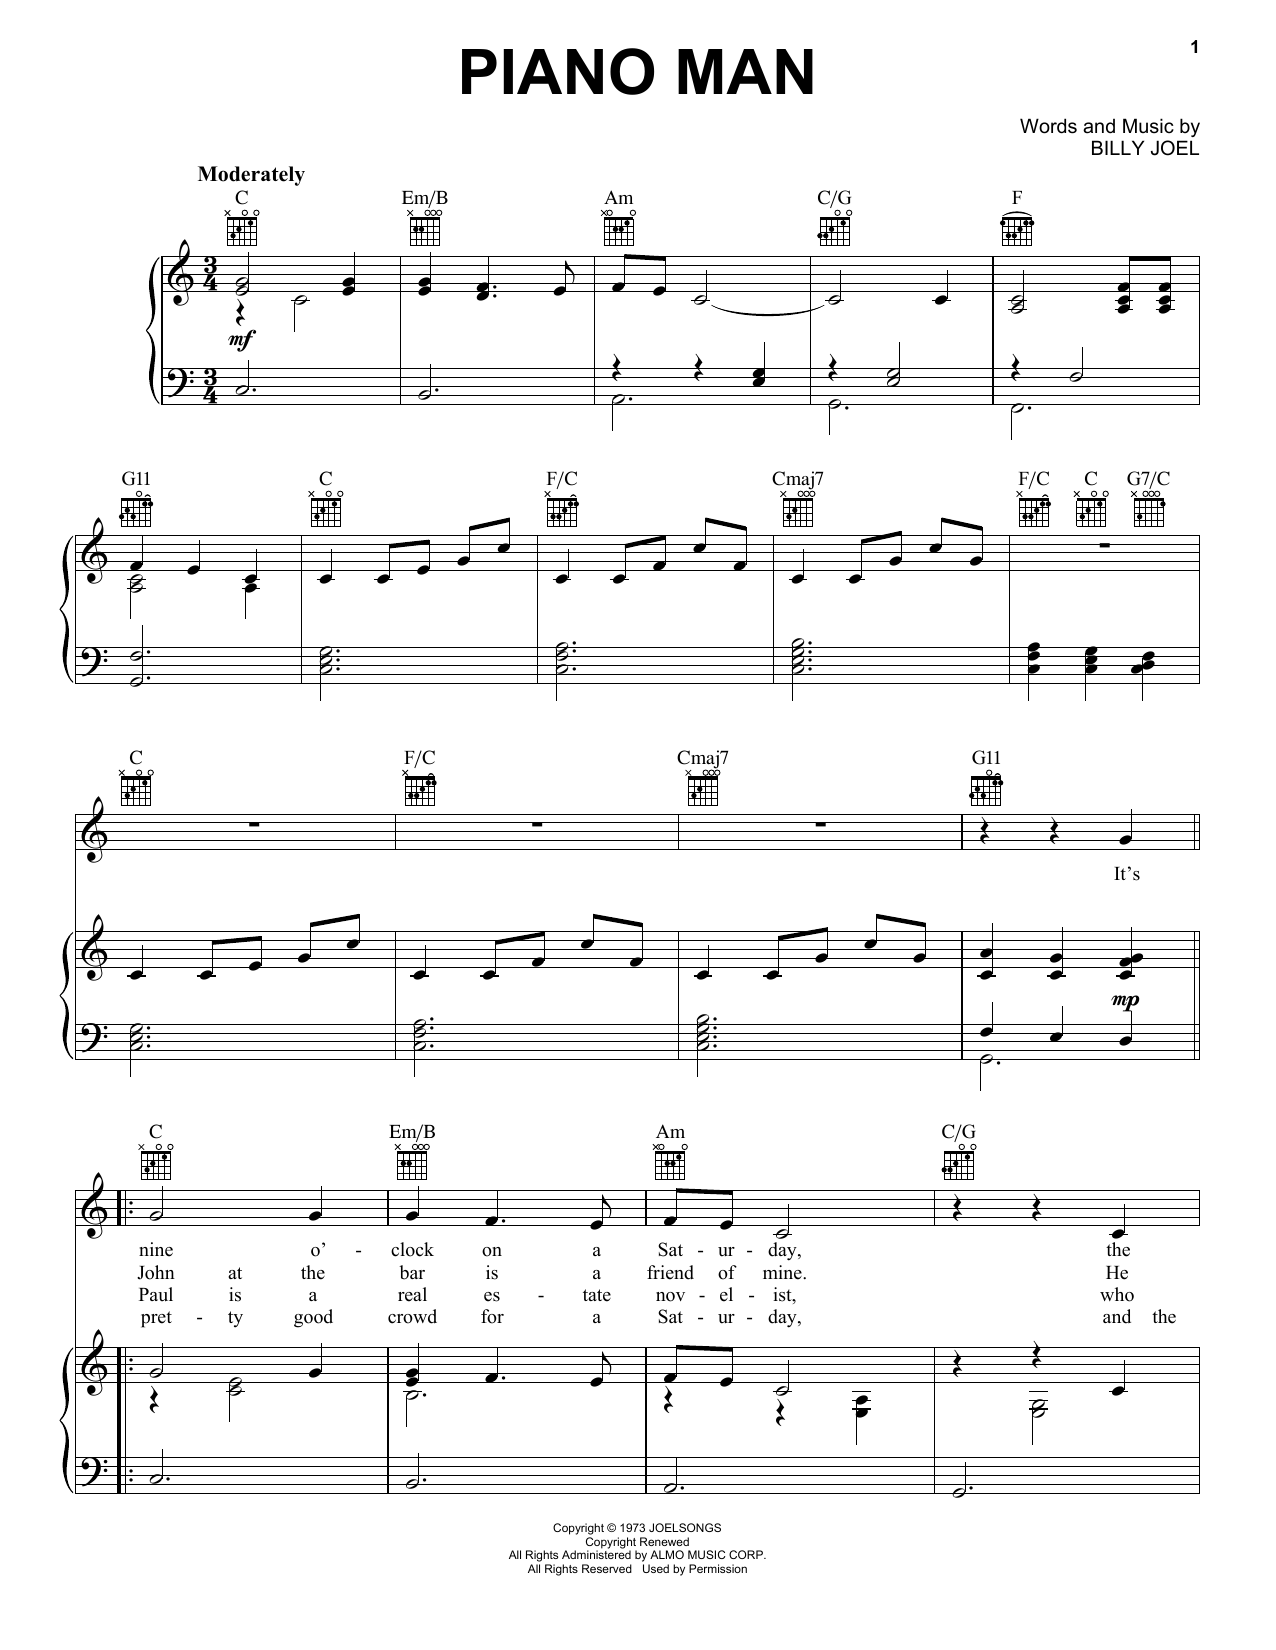 Billy Joel Piano Man Sheet Music Notes Chords Printable Rock